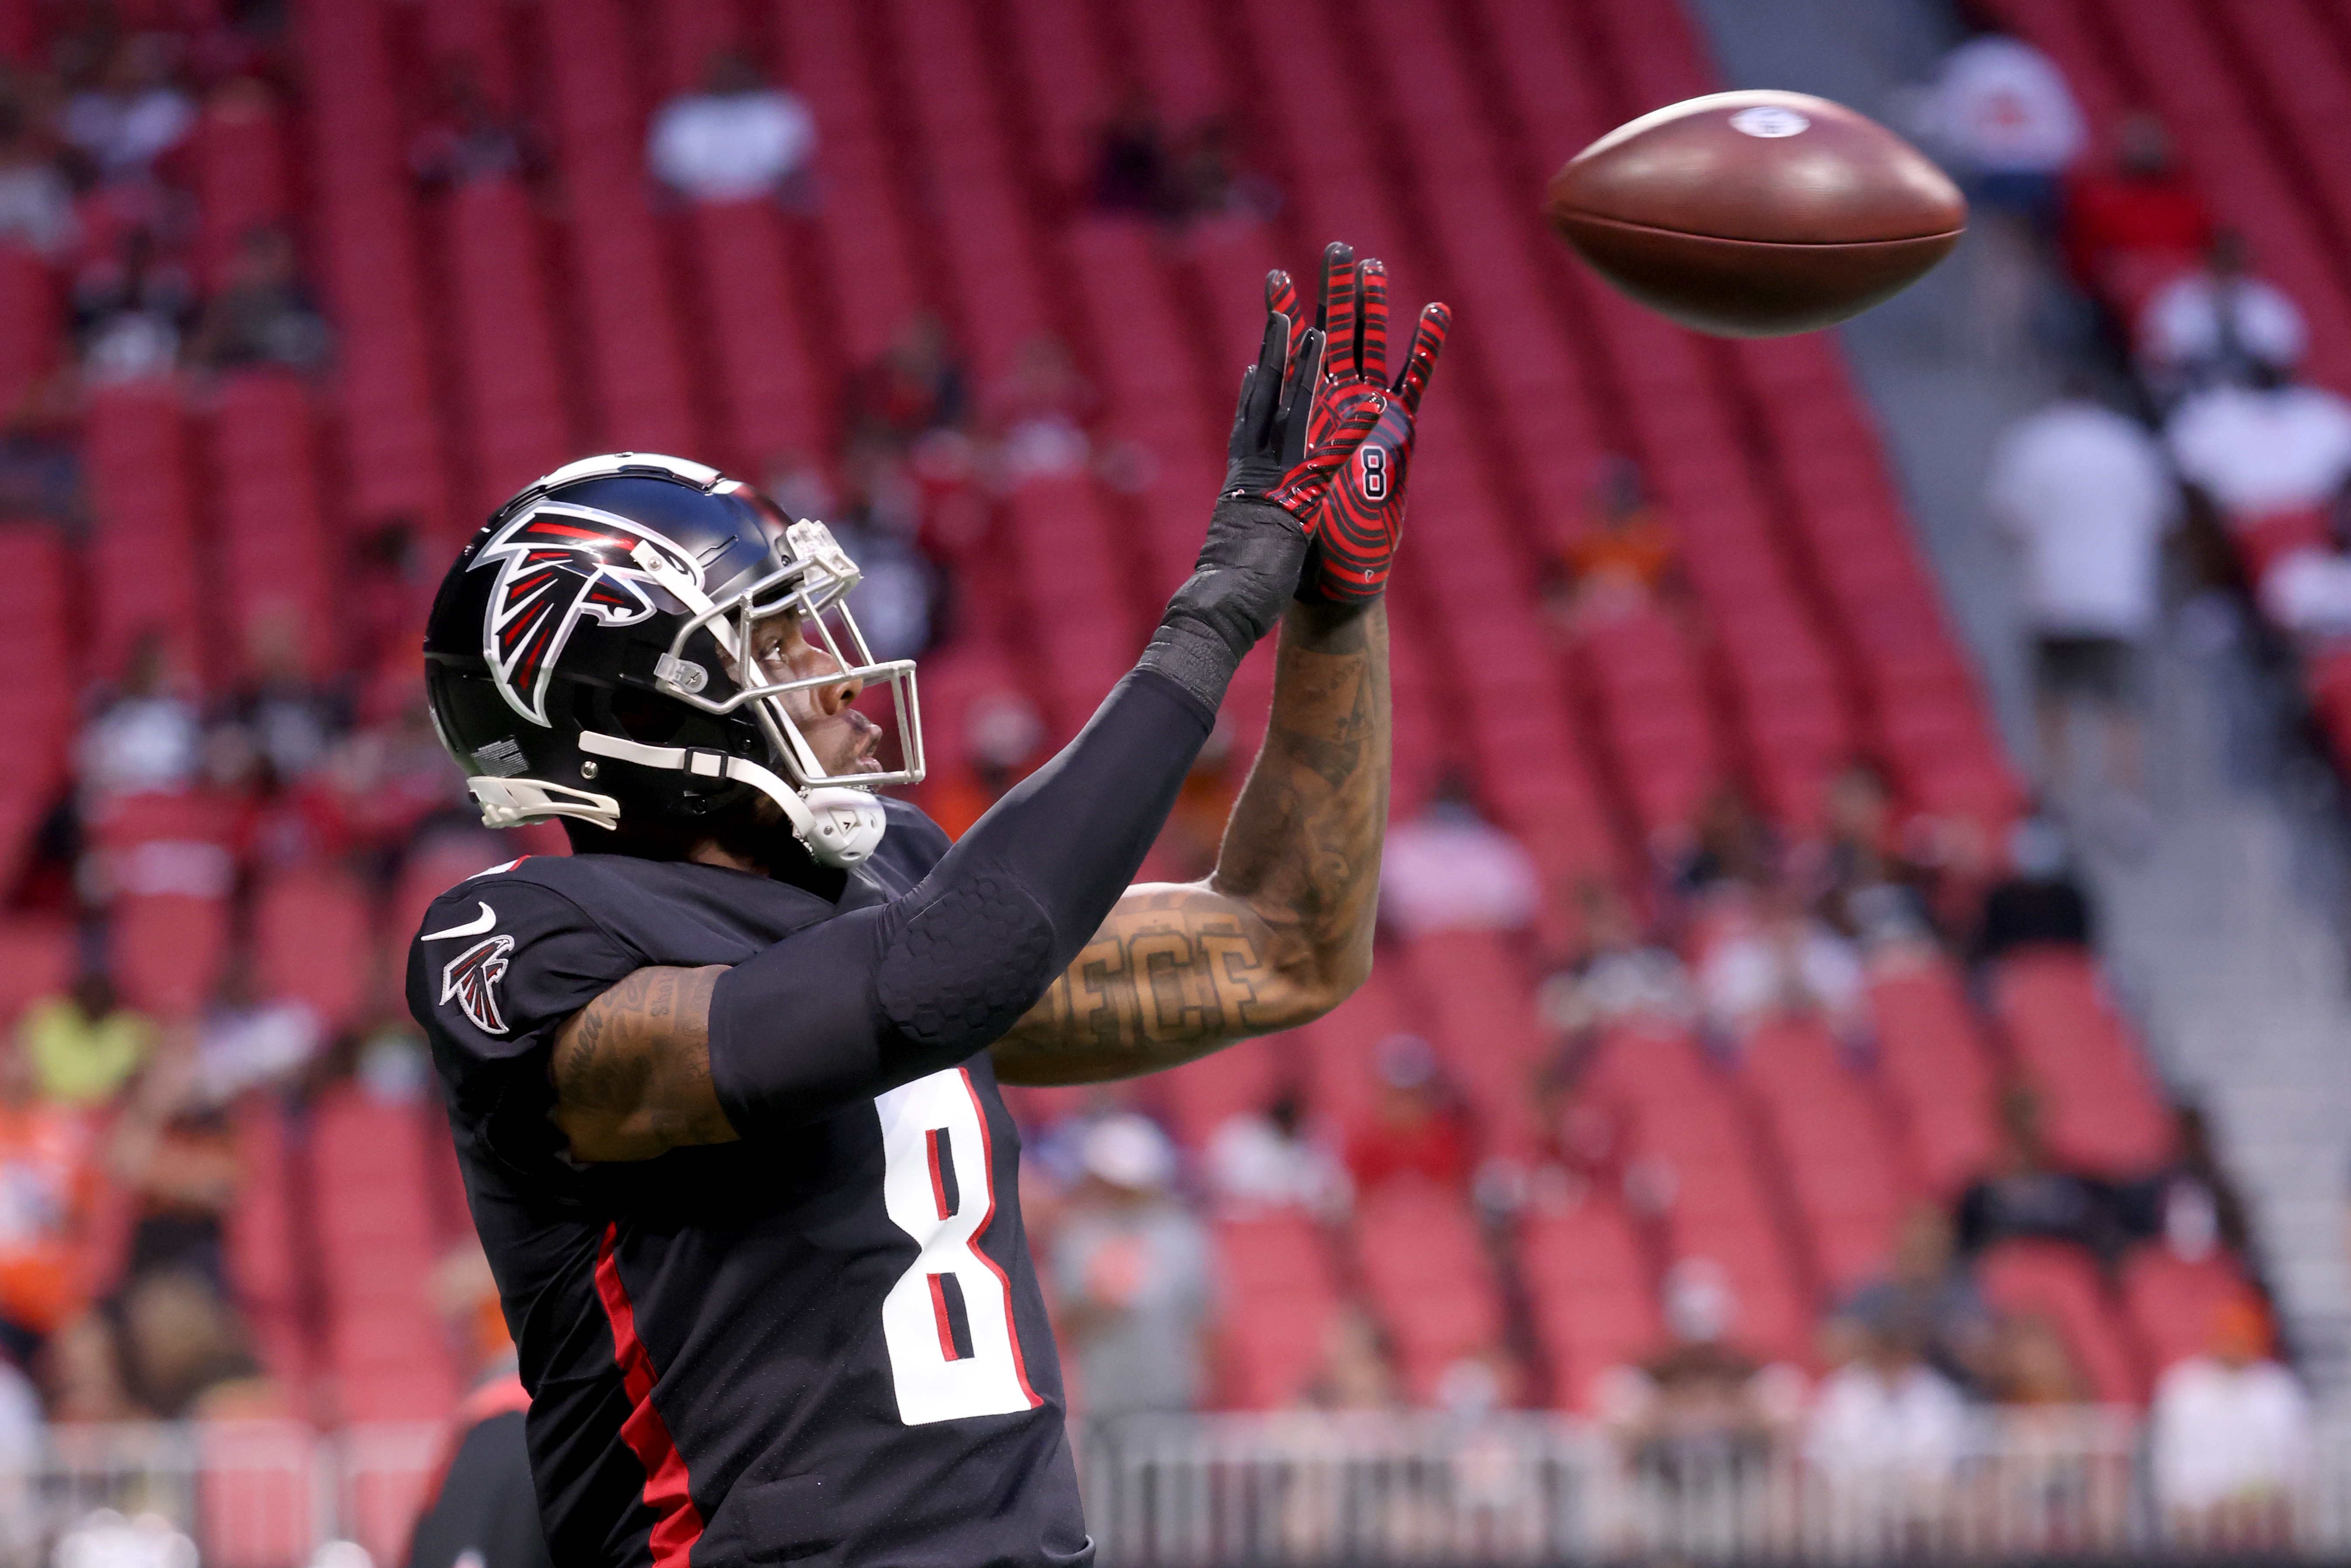 Atlanta Falcons tight end Kyle Pitts (8) catches a pass during warmups before their game against the Cleveland Browns at Mercedes-Benz Stadium.